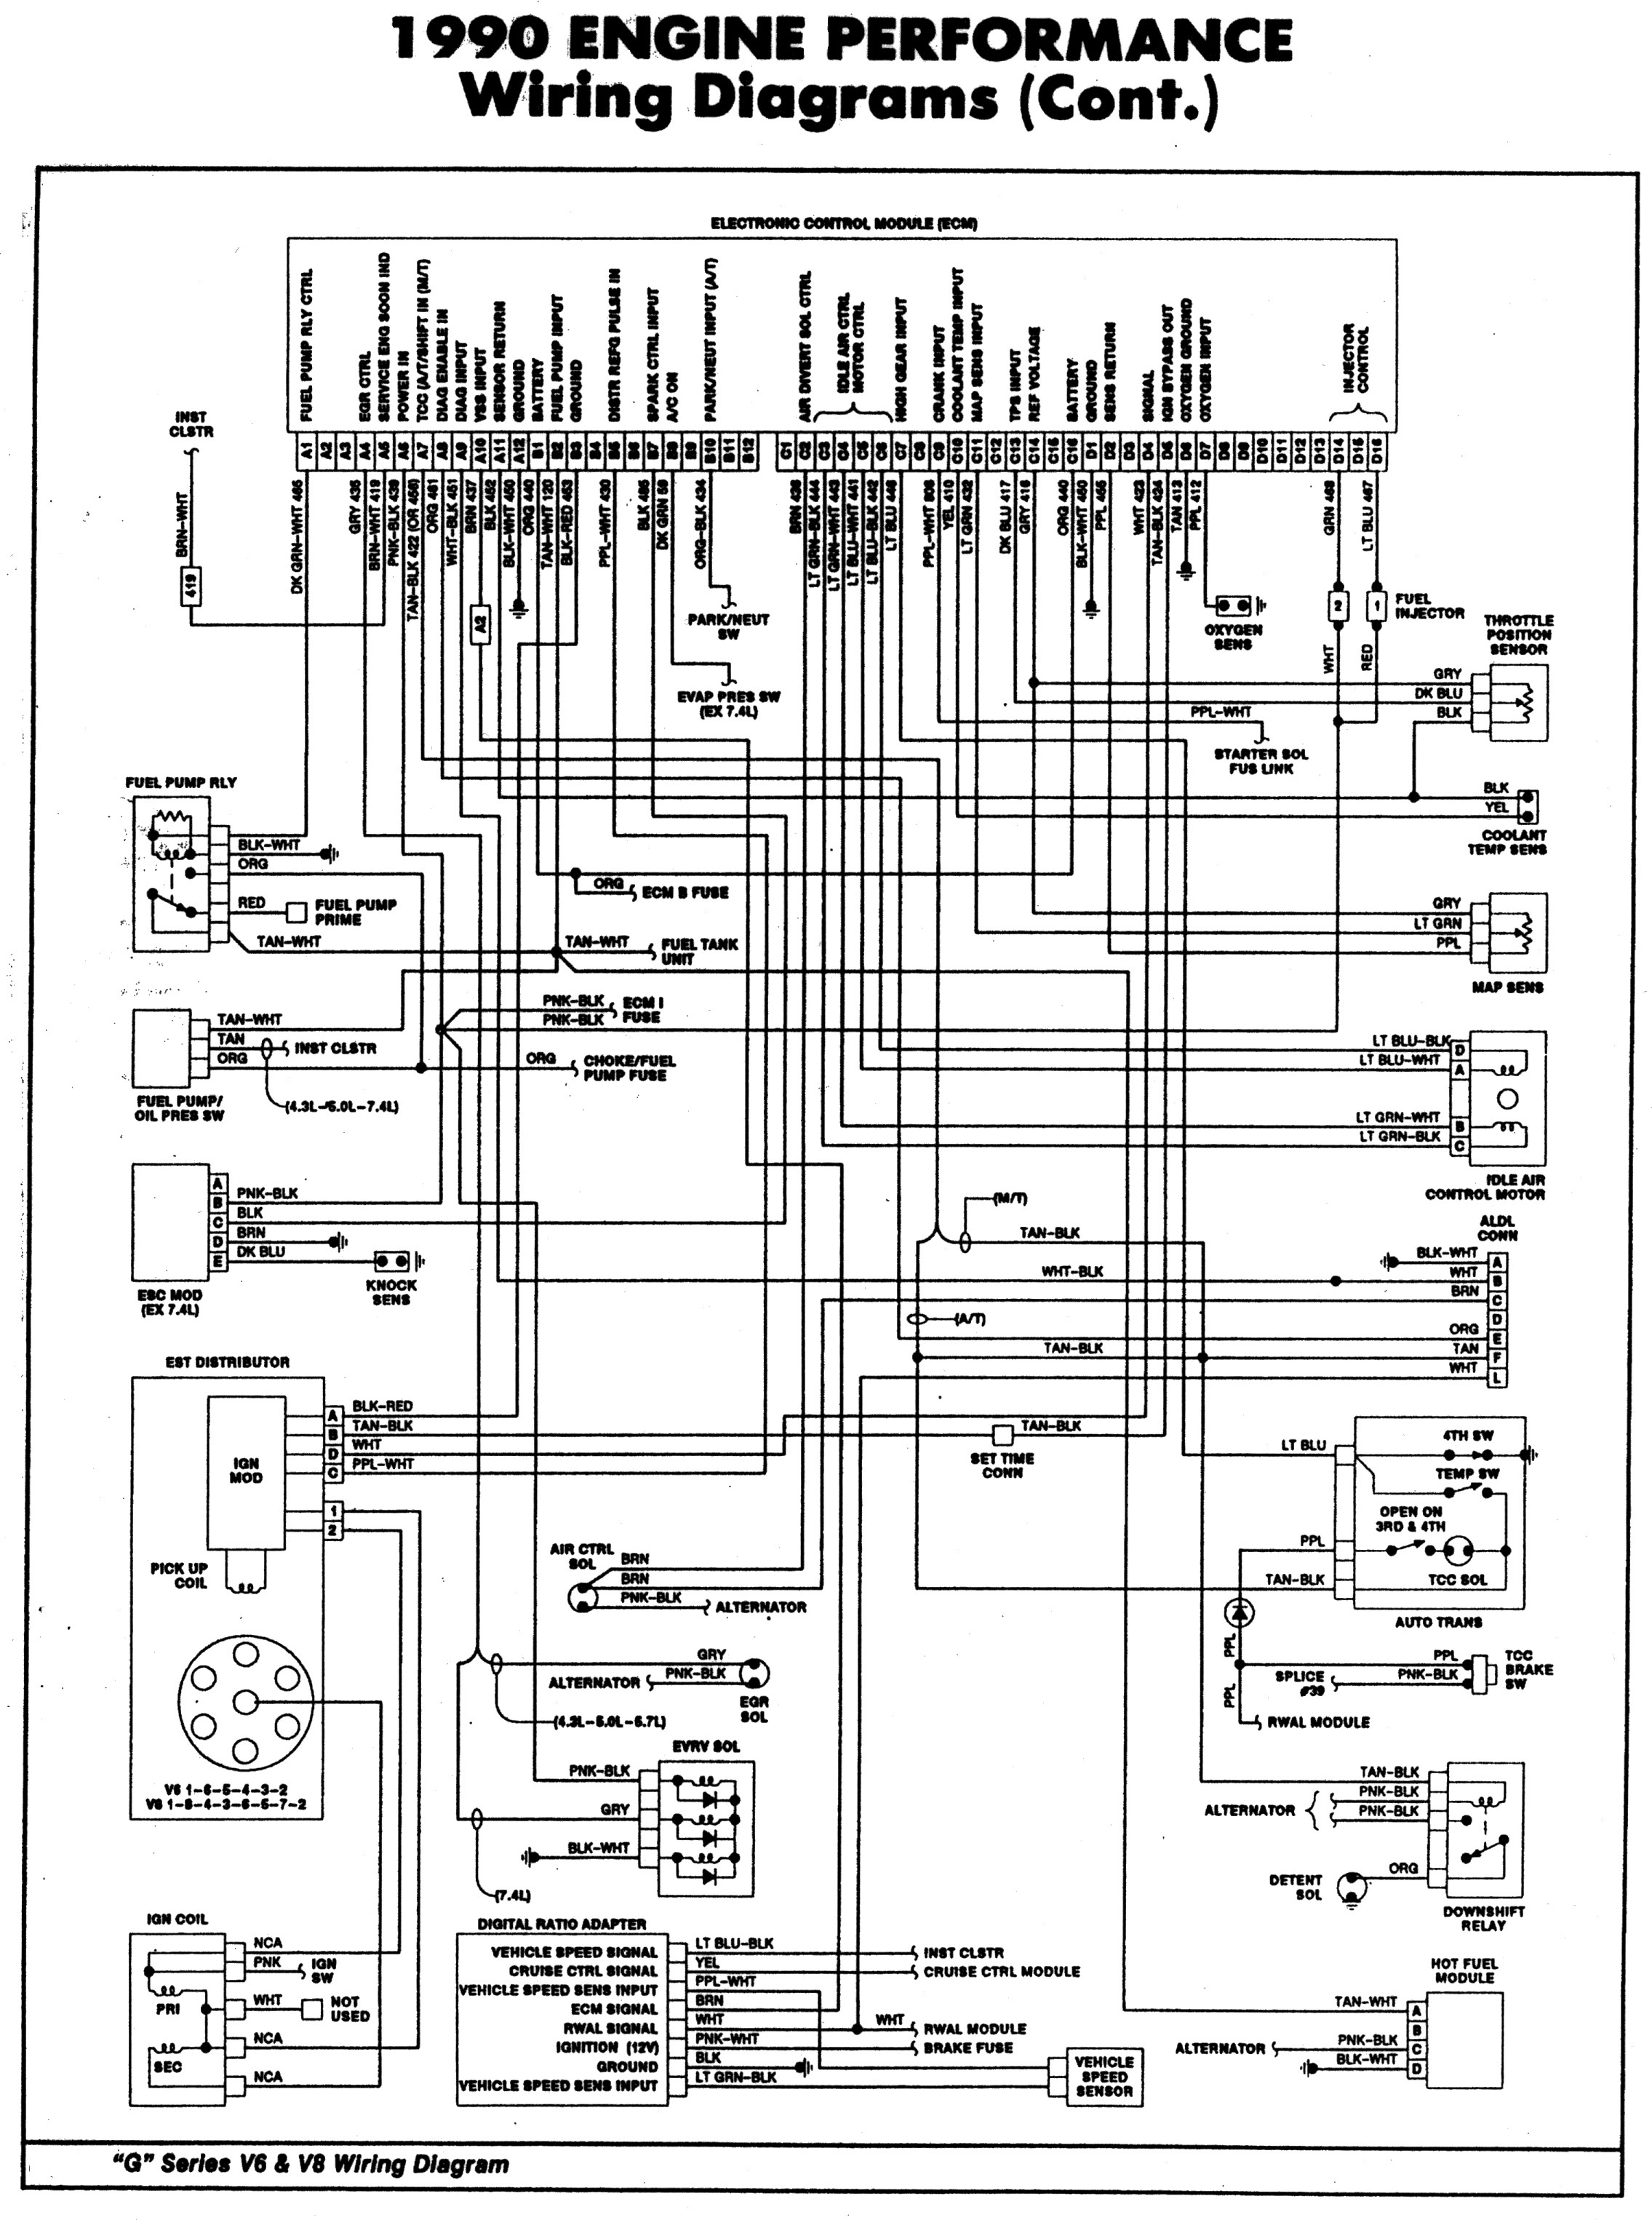 1988 chevy truck 1500 wiring diagram 1965 data diagram schematic1989 chevy 1500 wiring 18 [ 2271 x 3051 Pixel ]